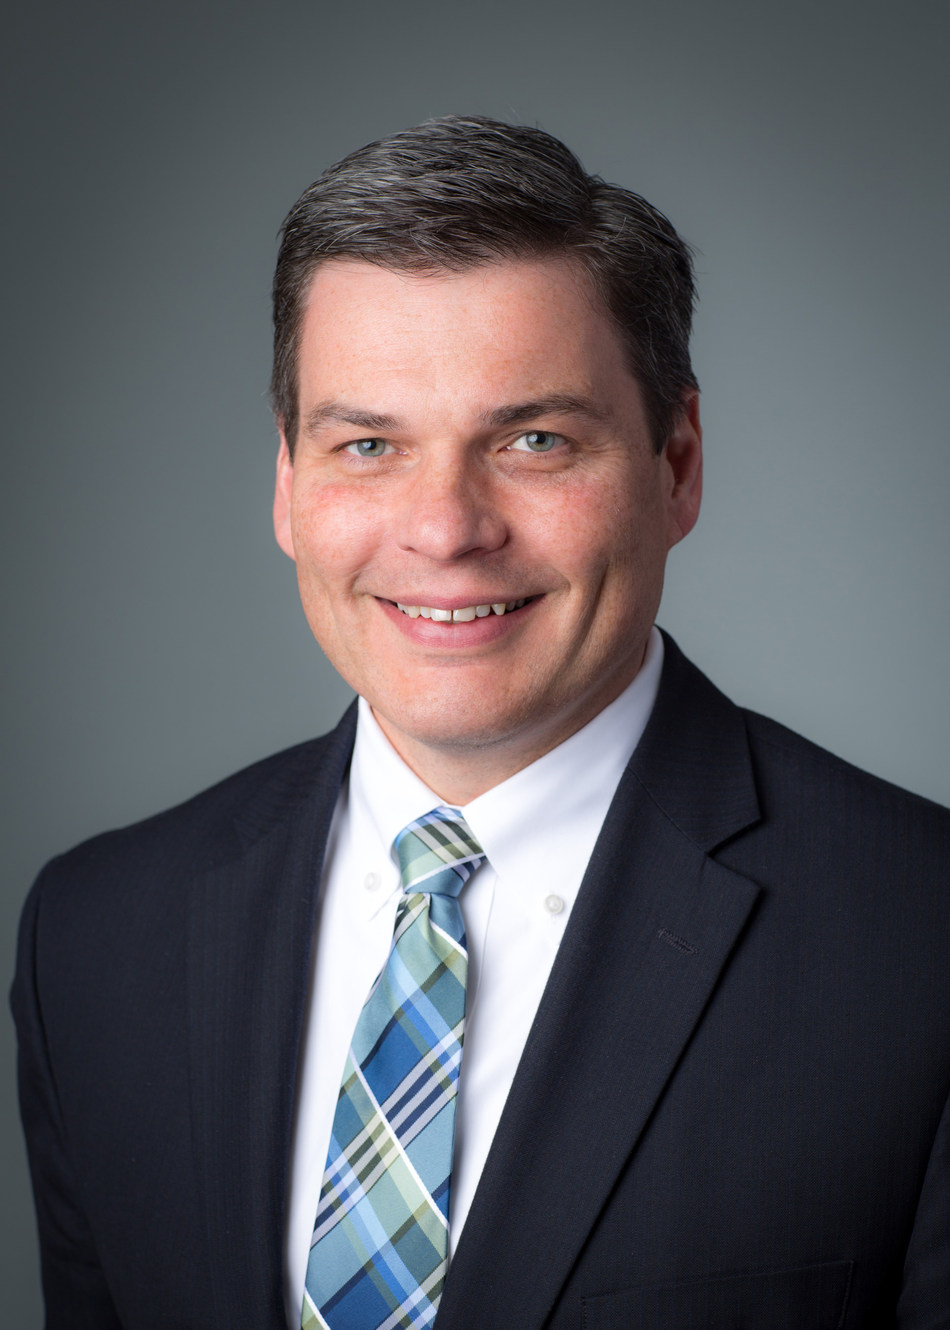 Scott Steele, President and CEO, The Bank of Fincastle